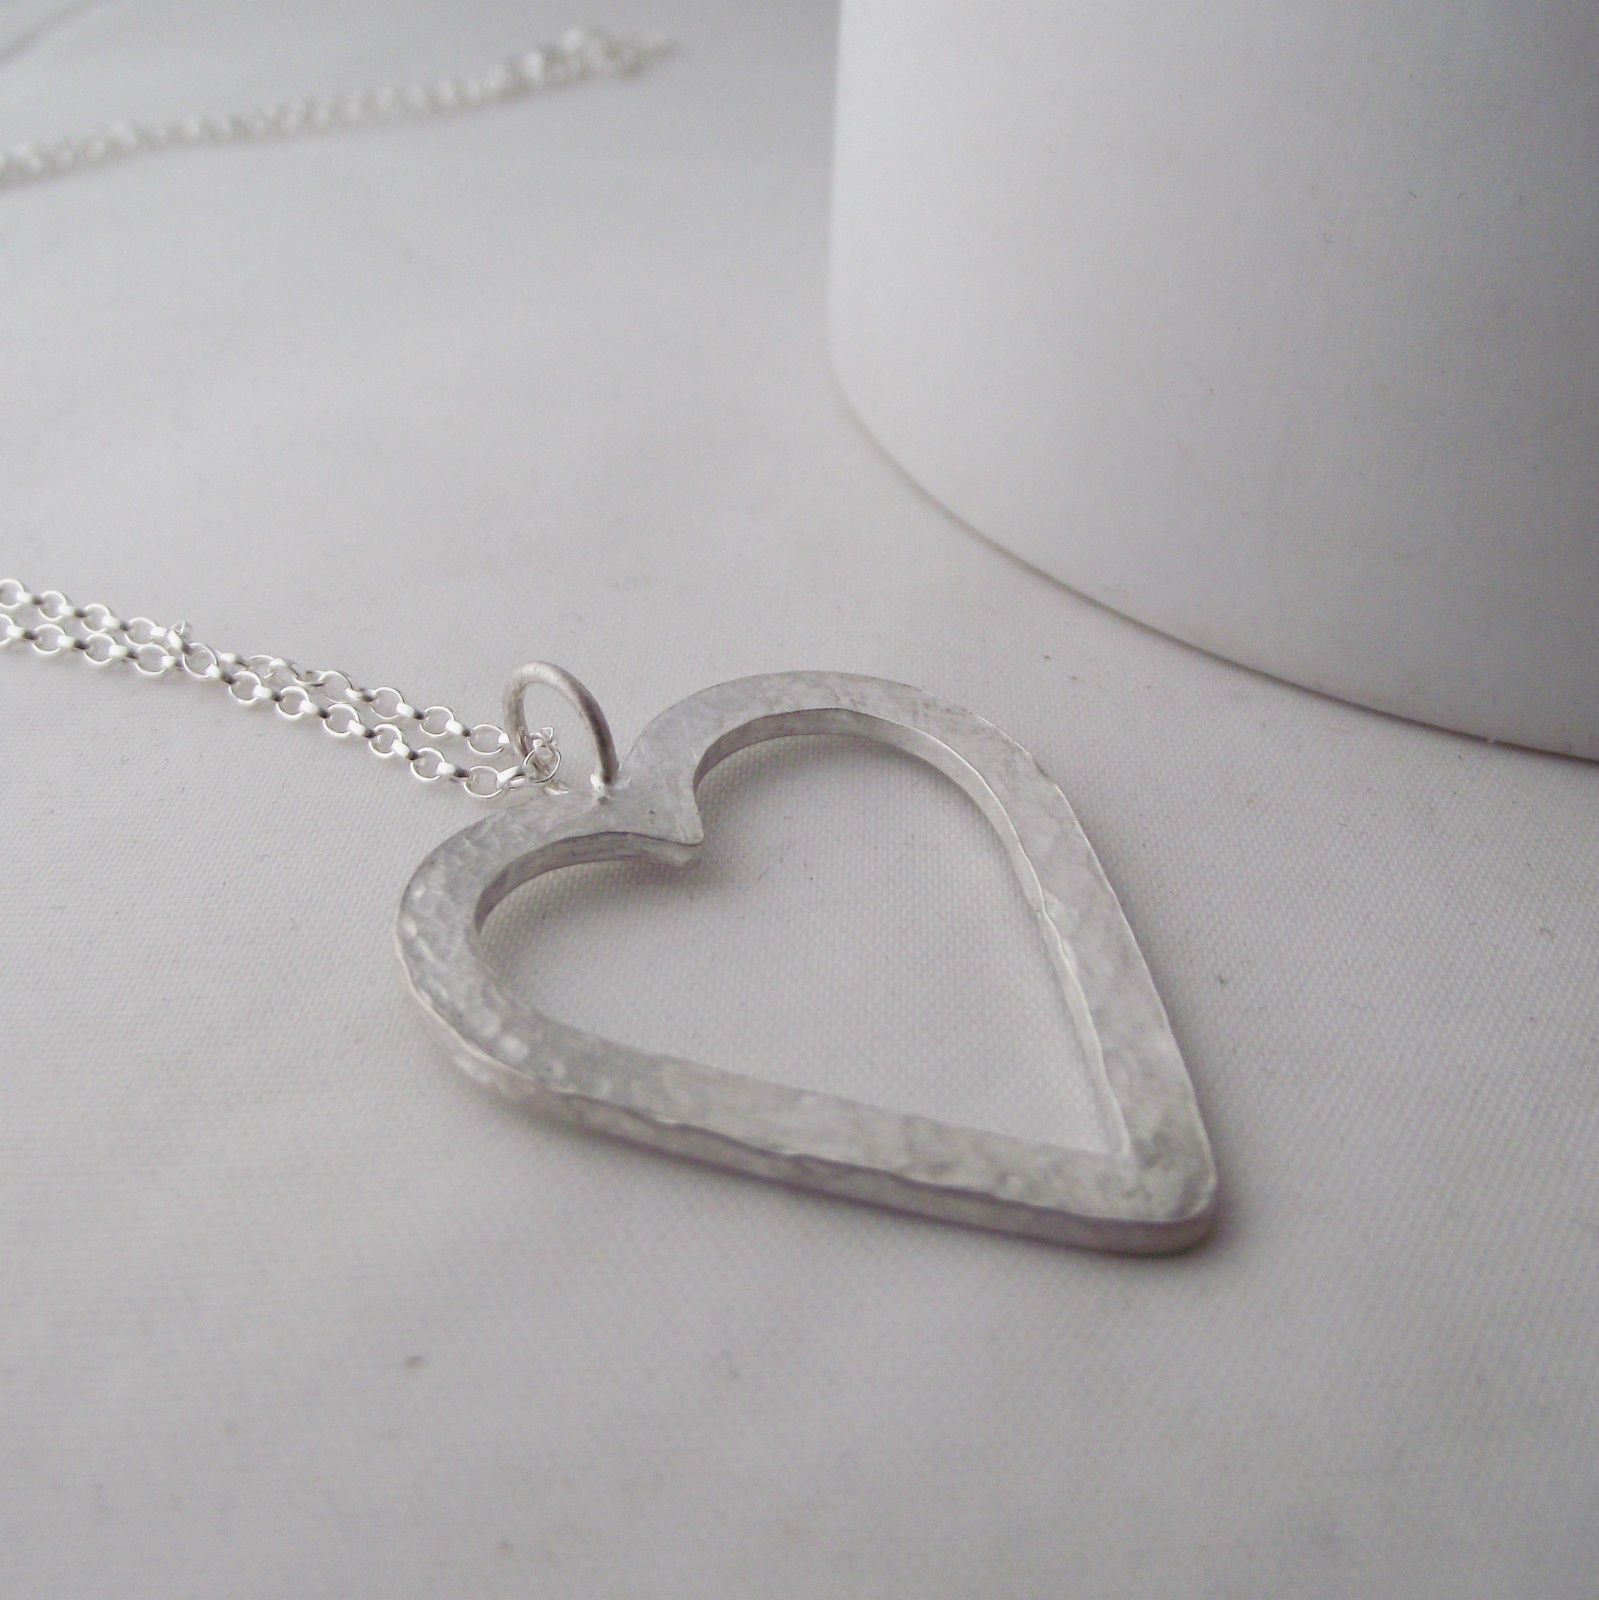 Necklace handmade sterling silver hammer finish large heart pendant stunning necklace handmade sterling silver hammer finish large heart pendant mozeypictures Images